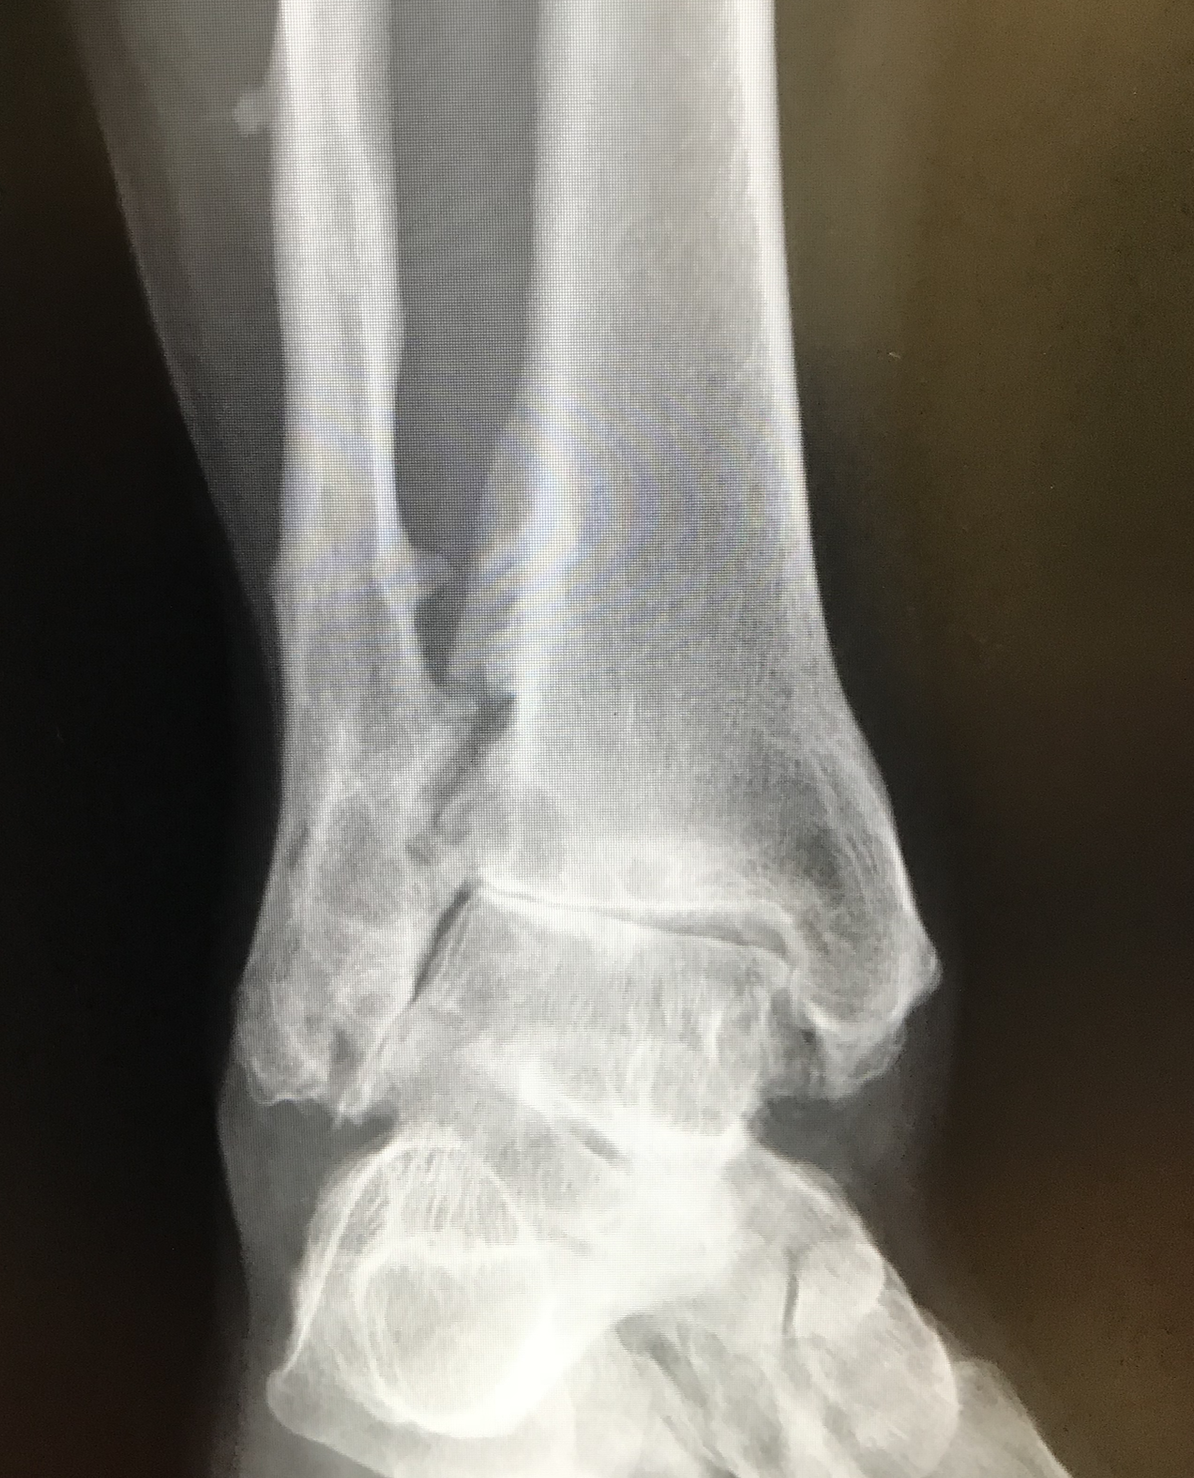 Case 2: x-ray before surgery